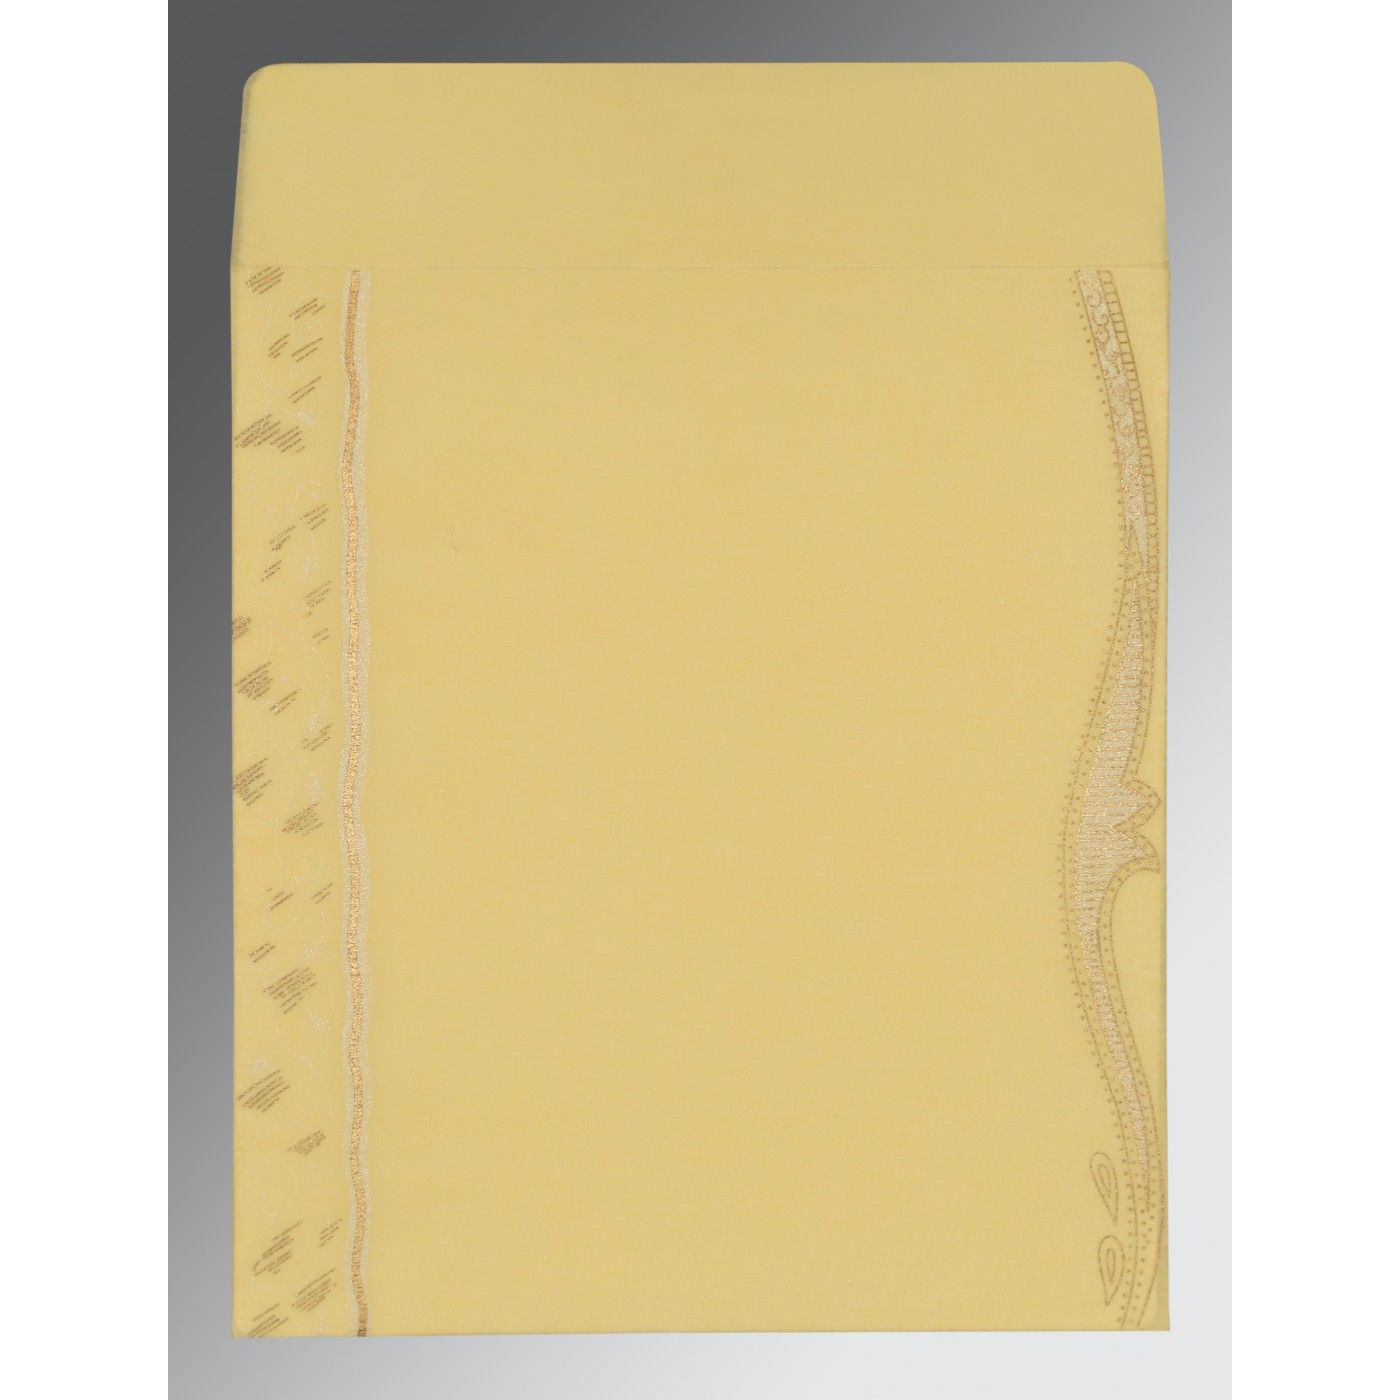 MUSTARD YELLOW SHIMMERY EMBOSSED WEDDING CARD : CW-8210G - IndianWeddingCards